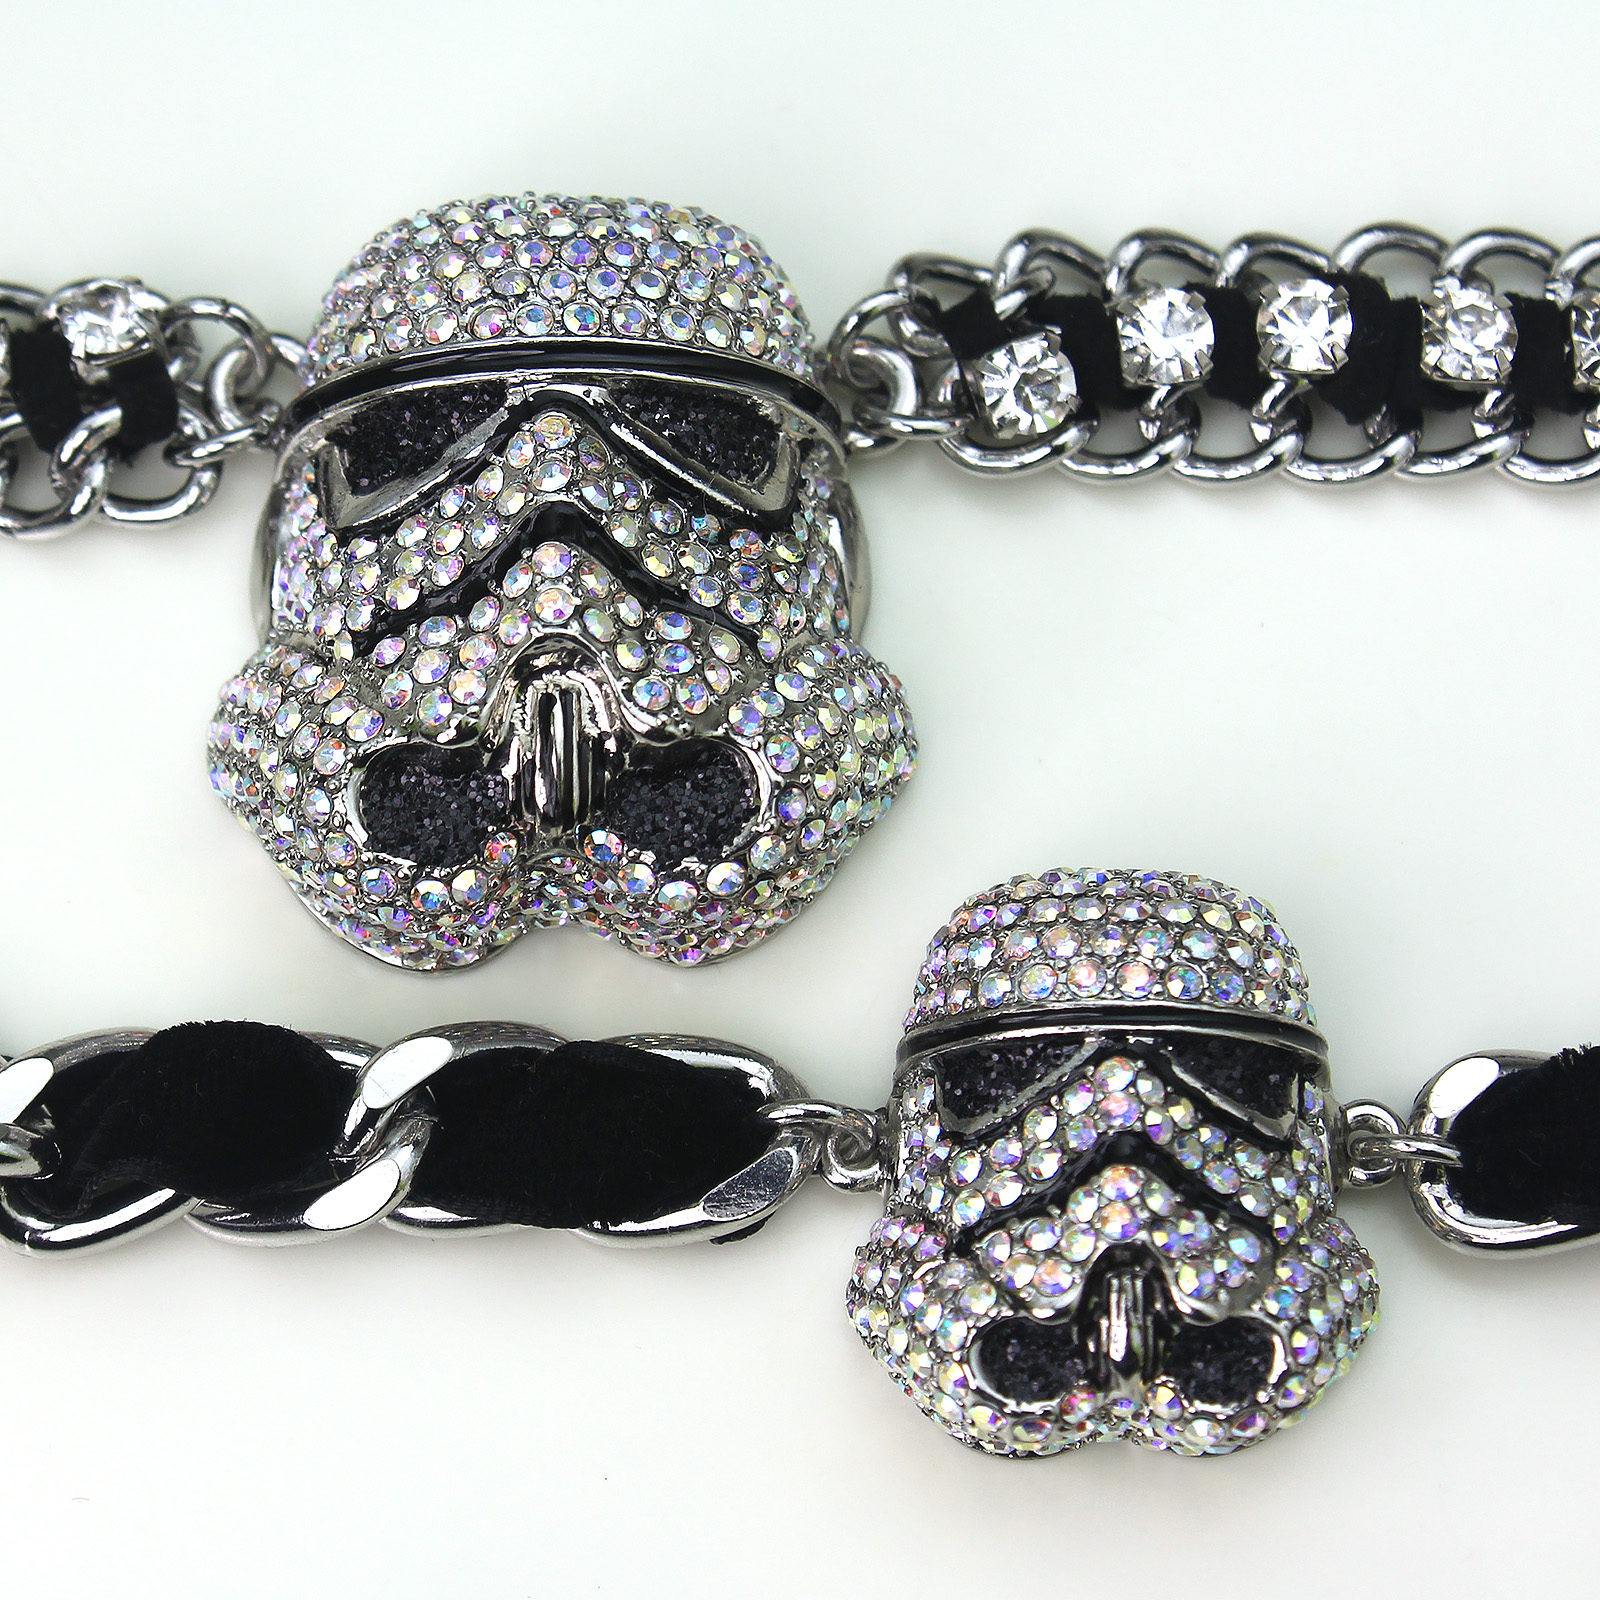 HSN - 'bling' Stormtrooper helmet jewelry by SG@NYC, LLC (size comparison)